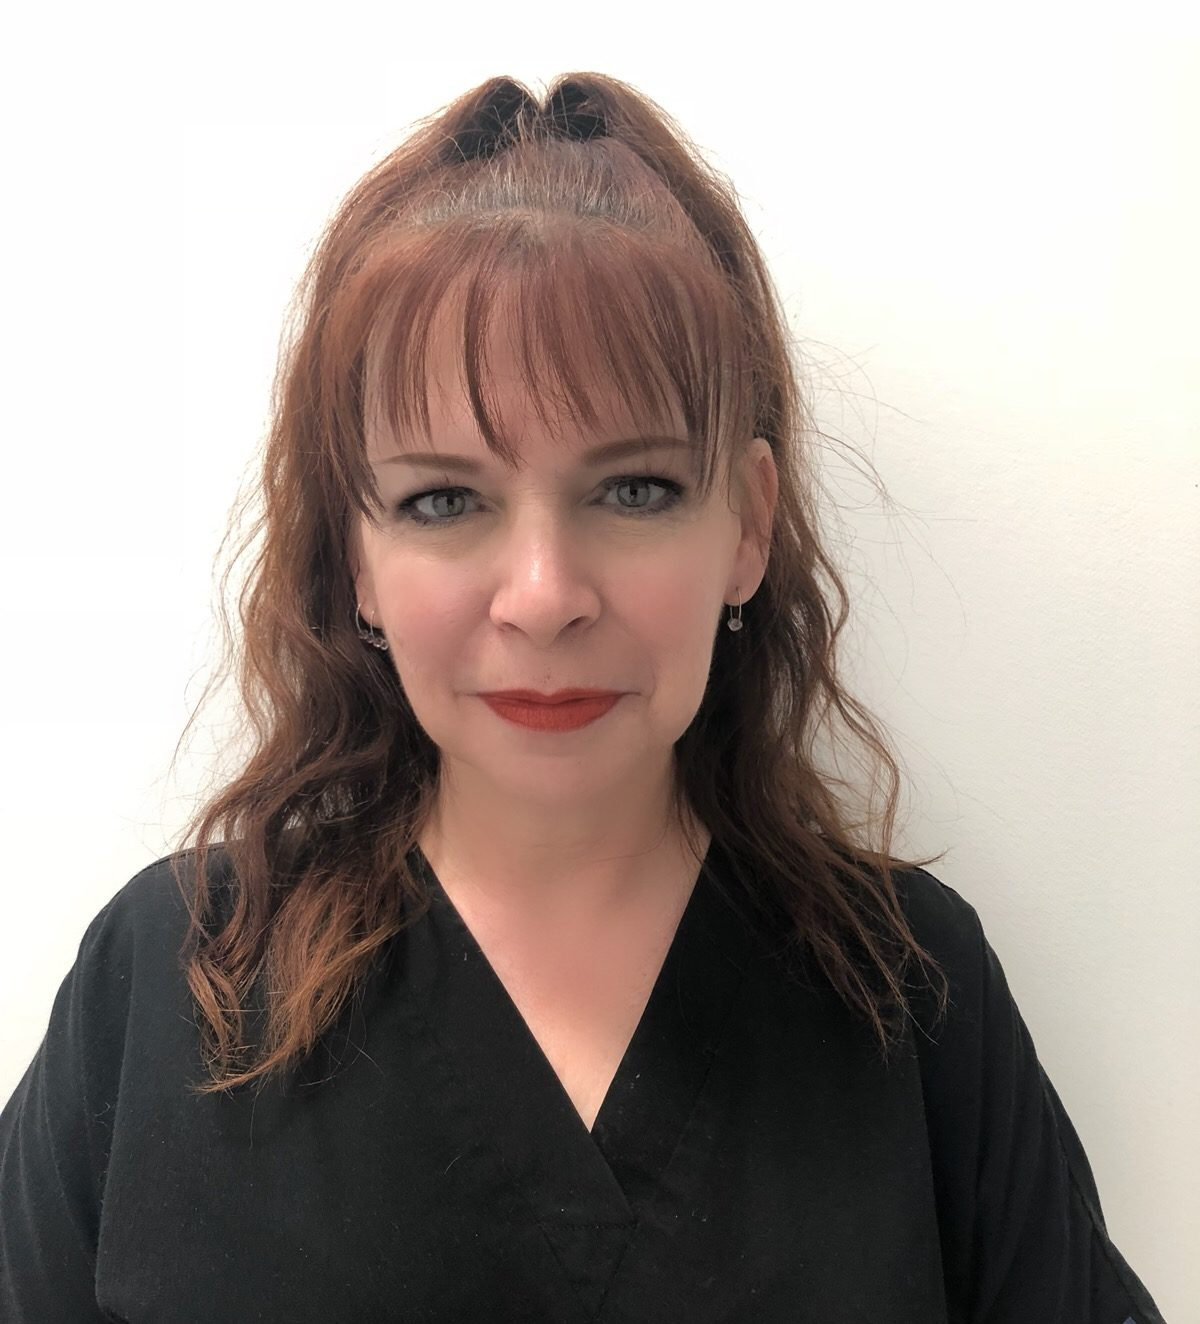 Michelle Headshot Exquisite Salon And Spa Quot Our Business